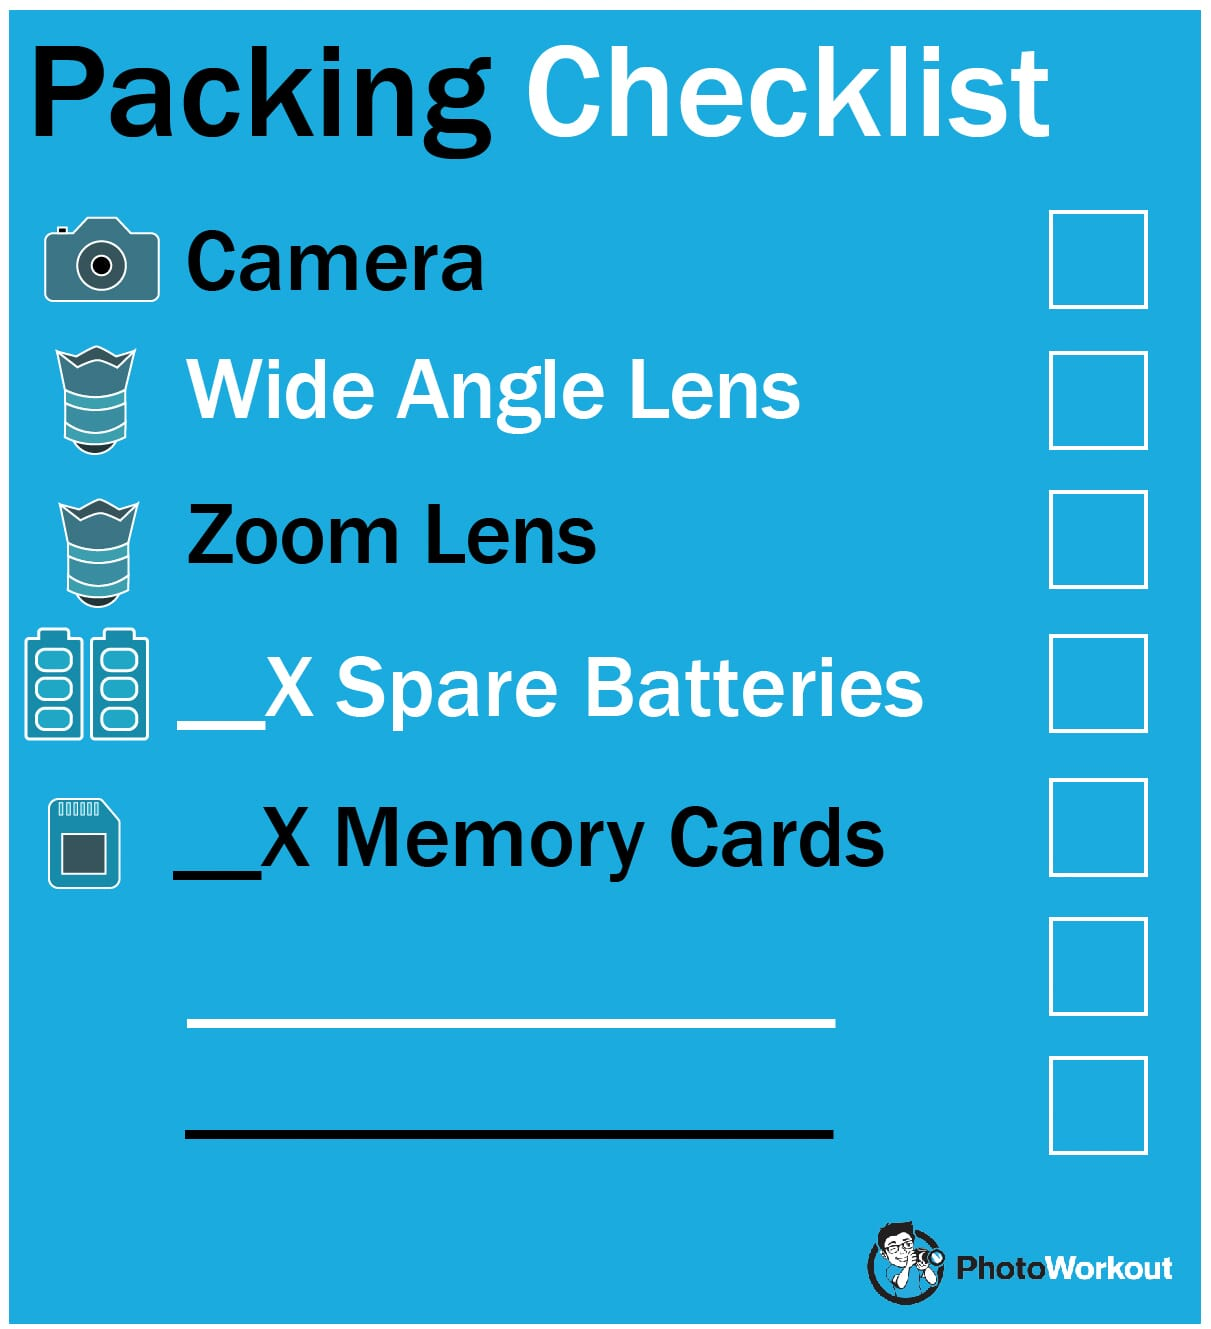 packing checklist how to take memorial pictures